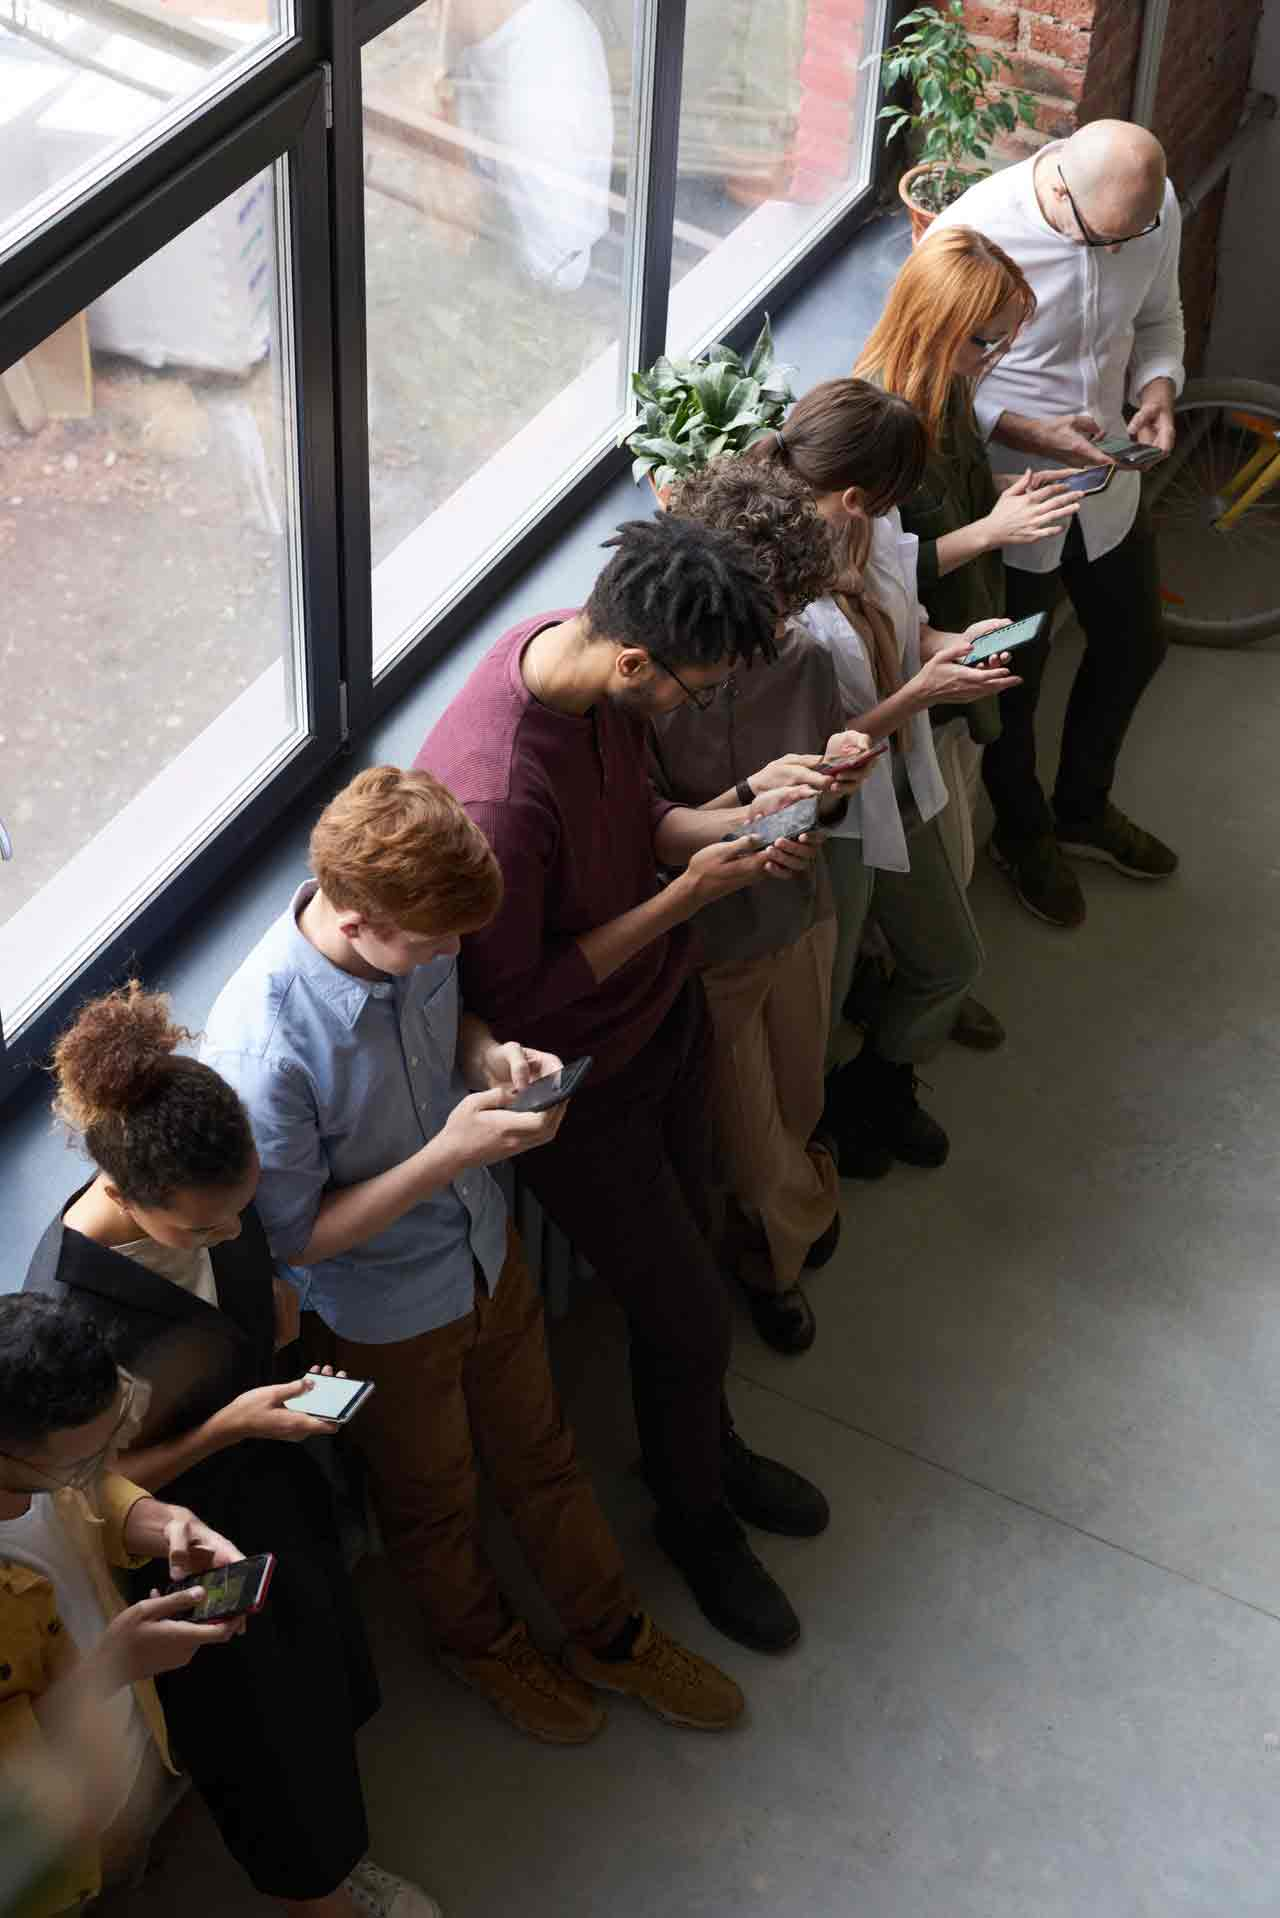 people-holding-their-phones-3184435